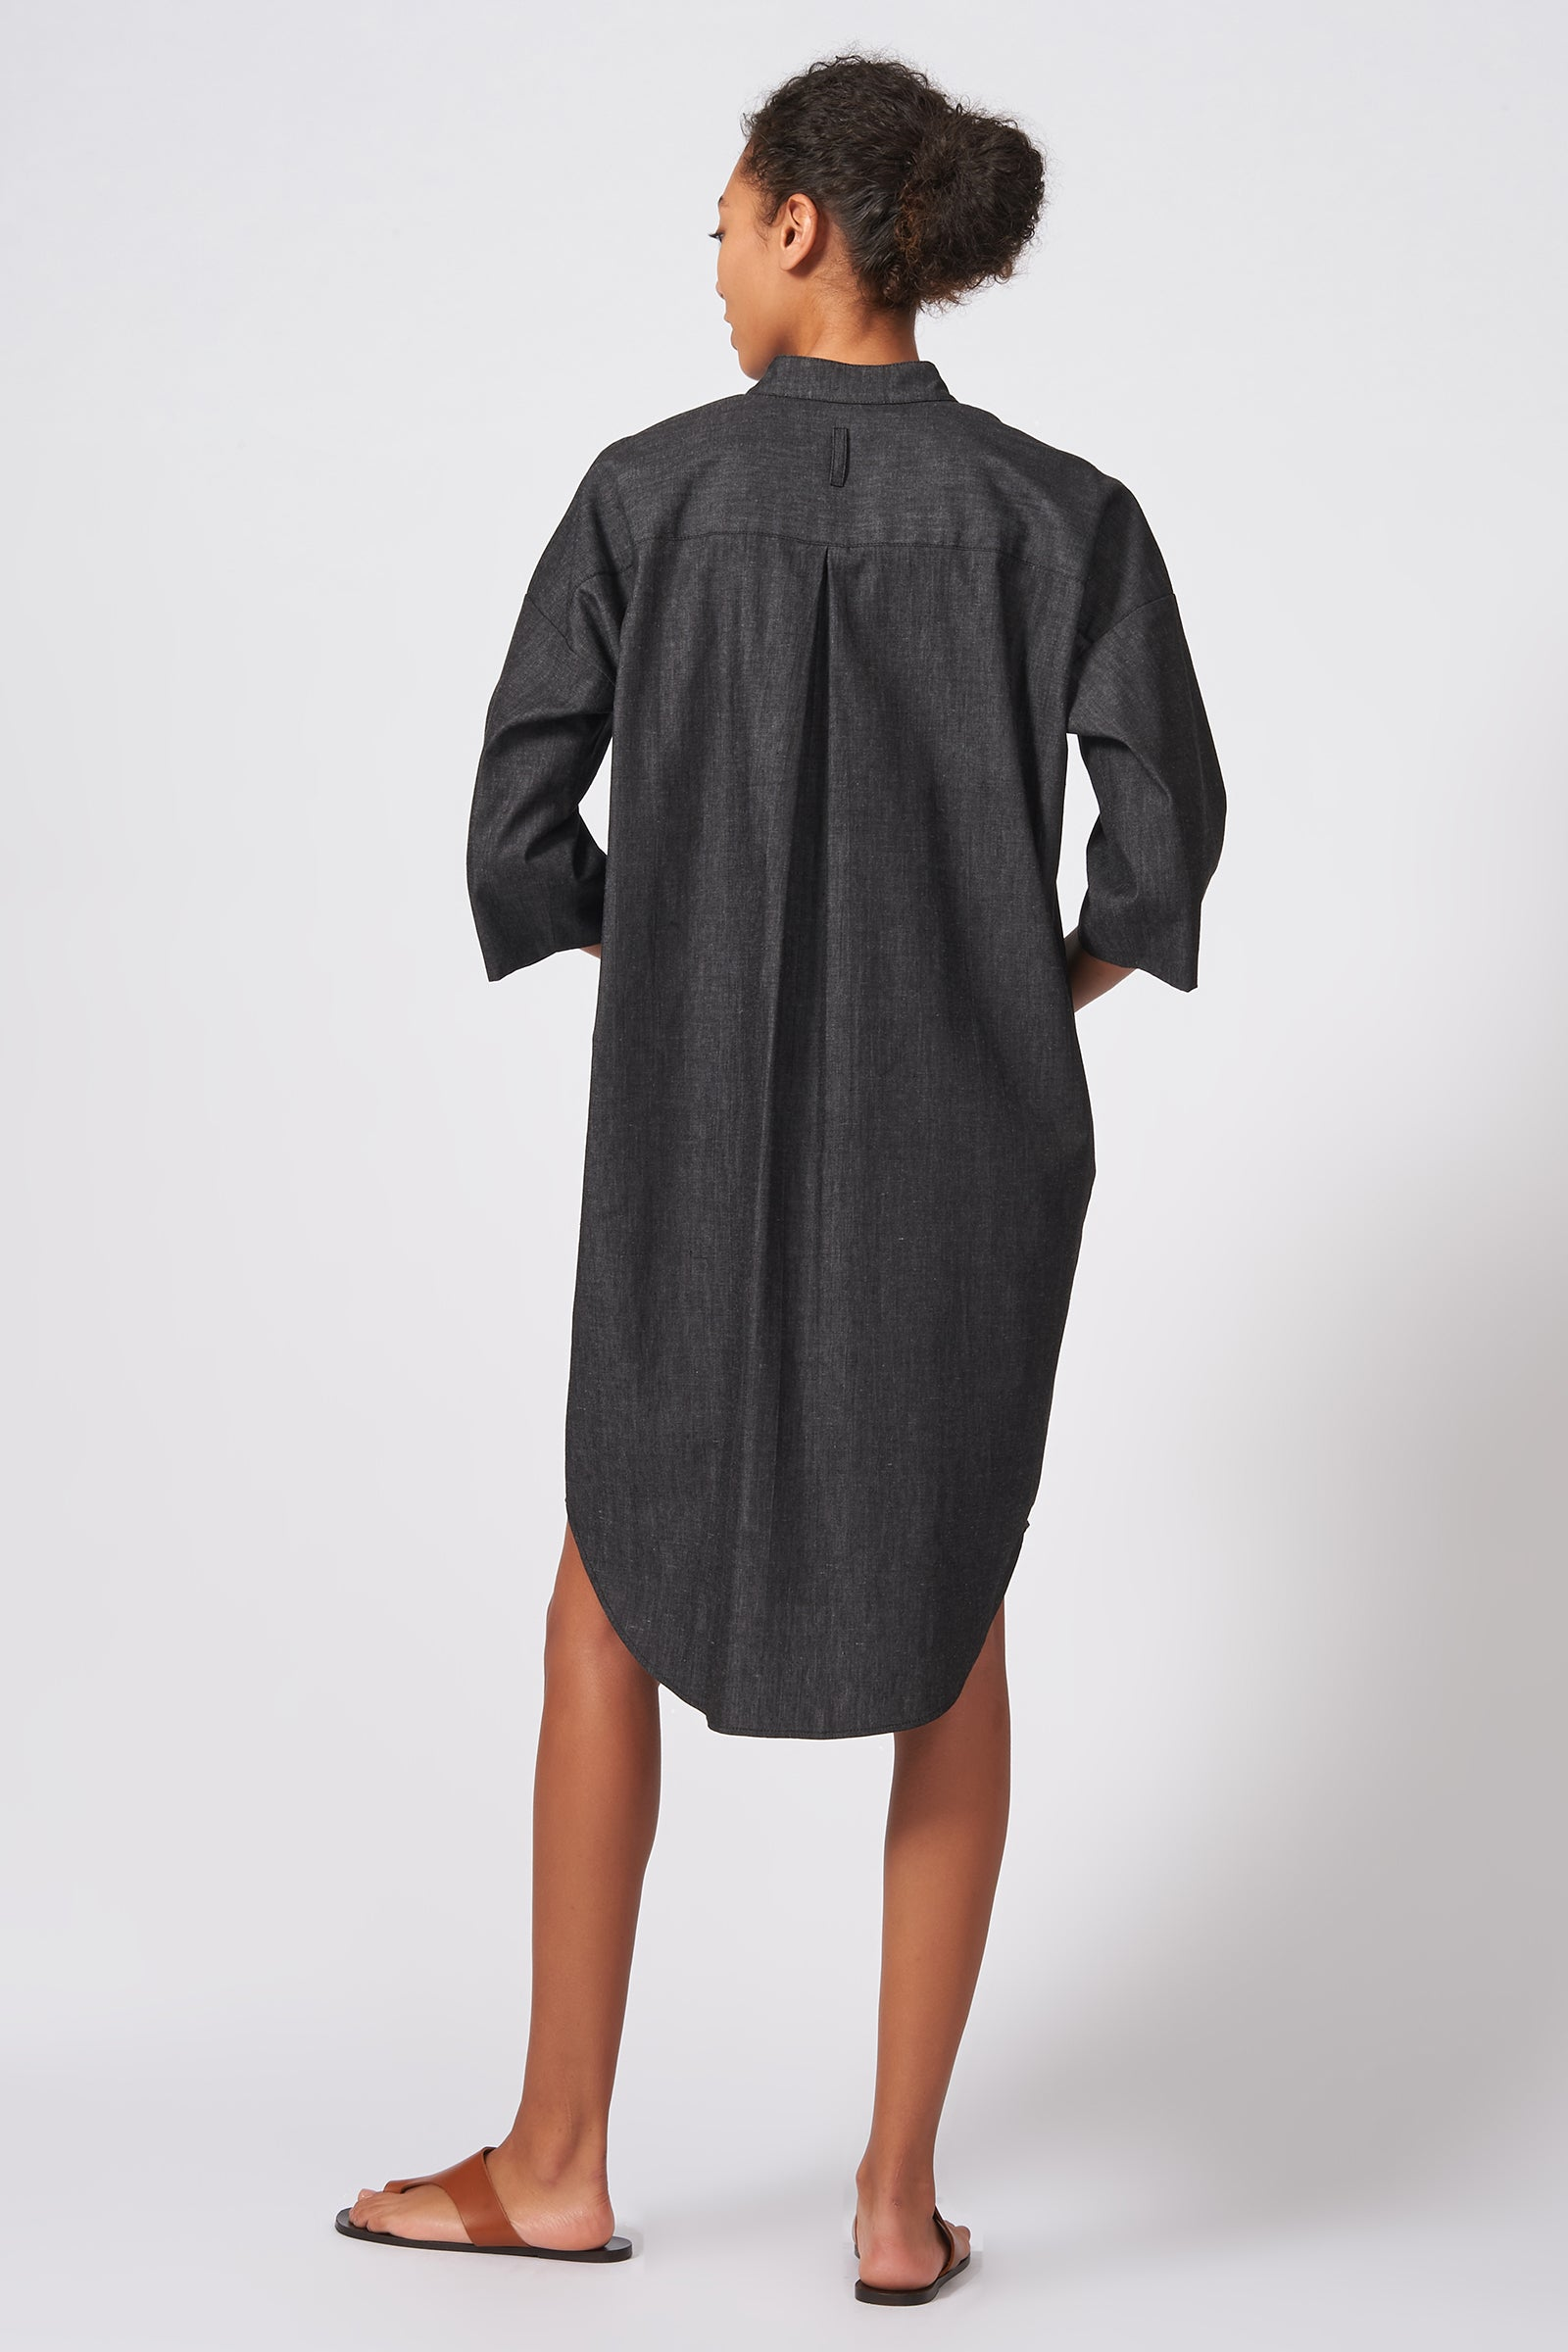 Kal Rieman Drop Sleeve Shirt Dress in Dark Denim on Model Front View